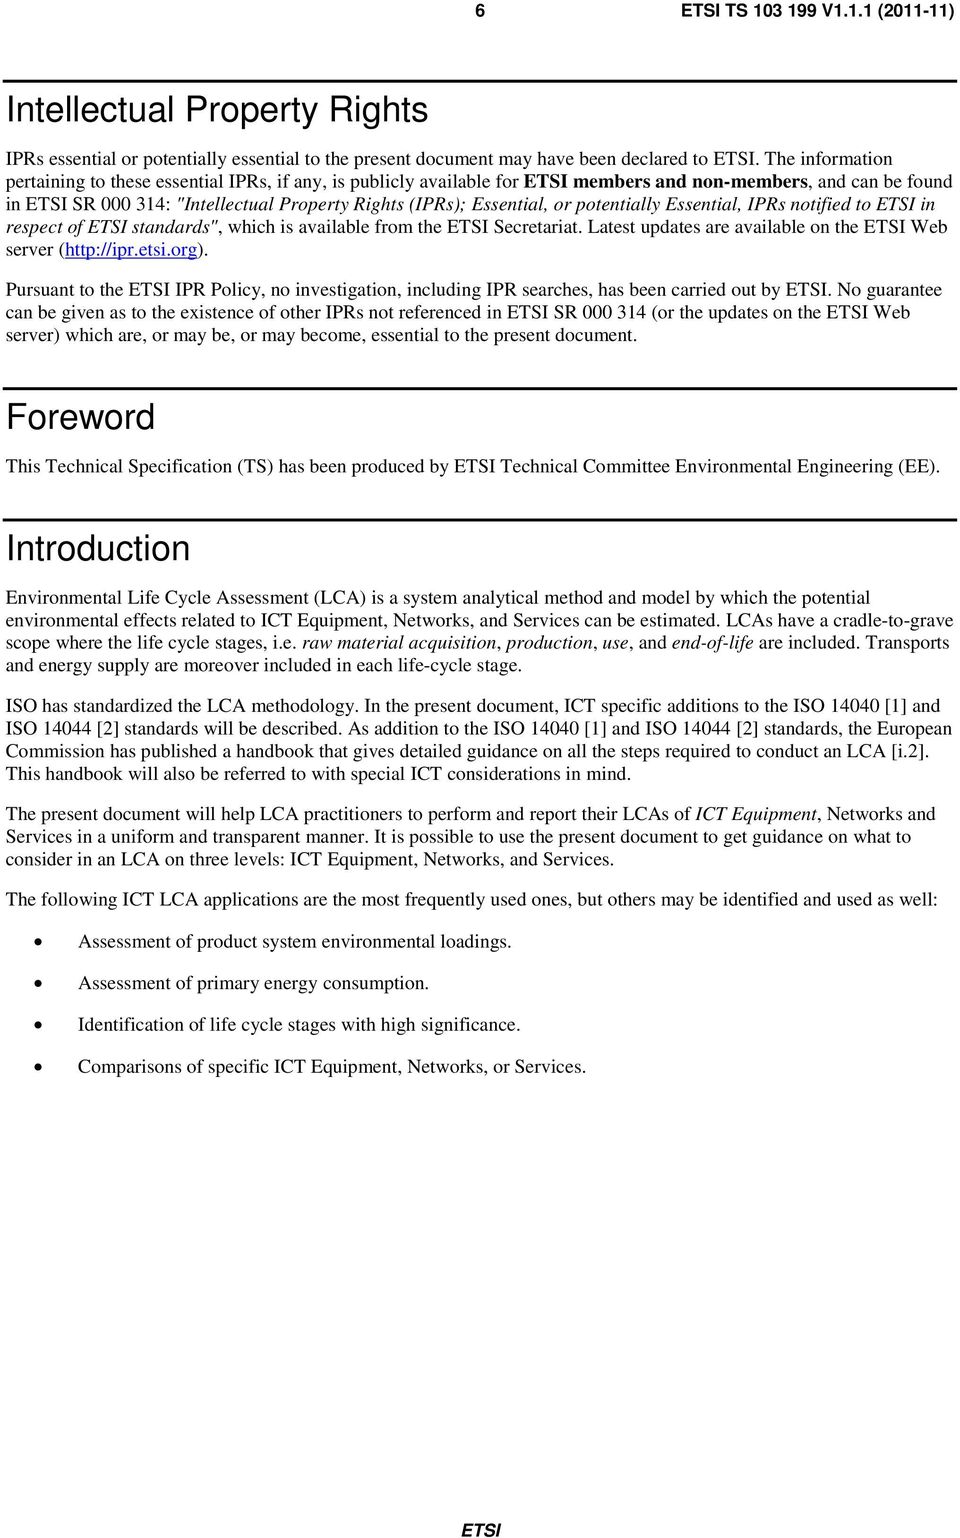 "potentially Essential, IPRs notified to in respect of standards"", which is available from the Secretariat. Latest updates are available on the Web server (http://ipr.etsi.org)."